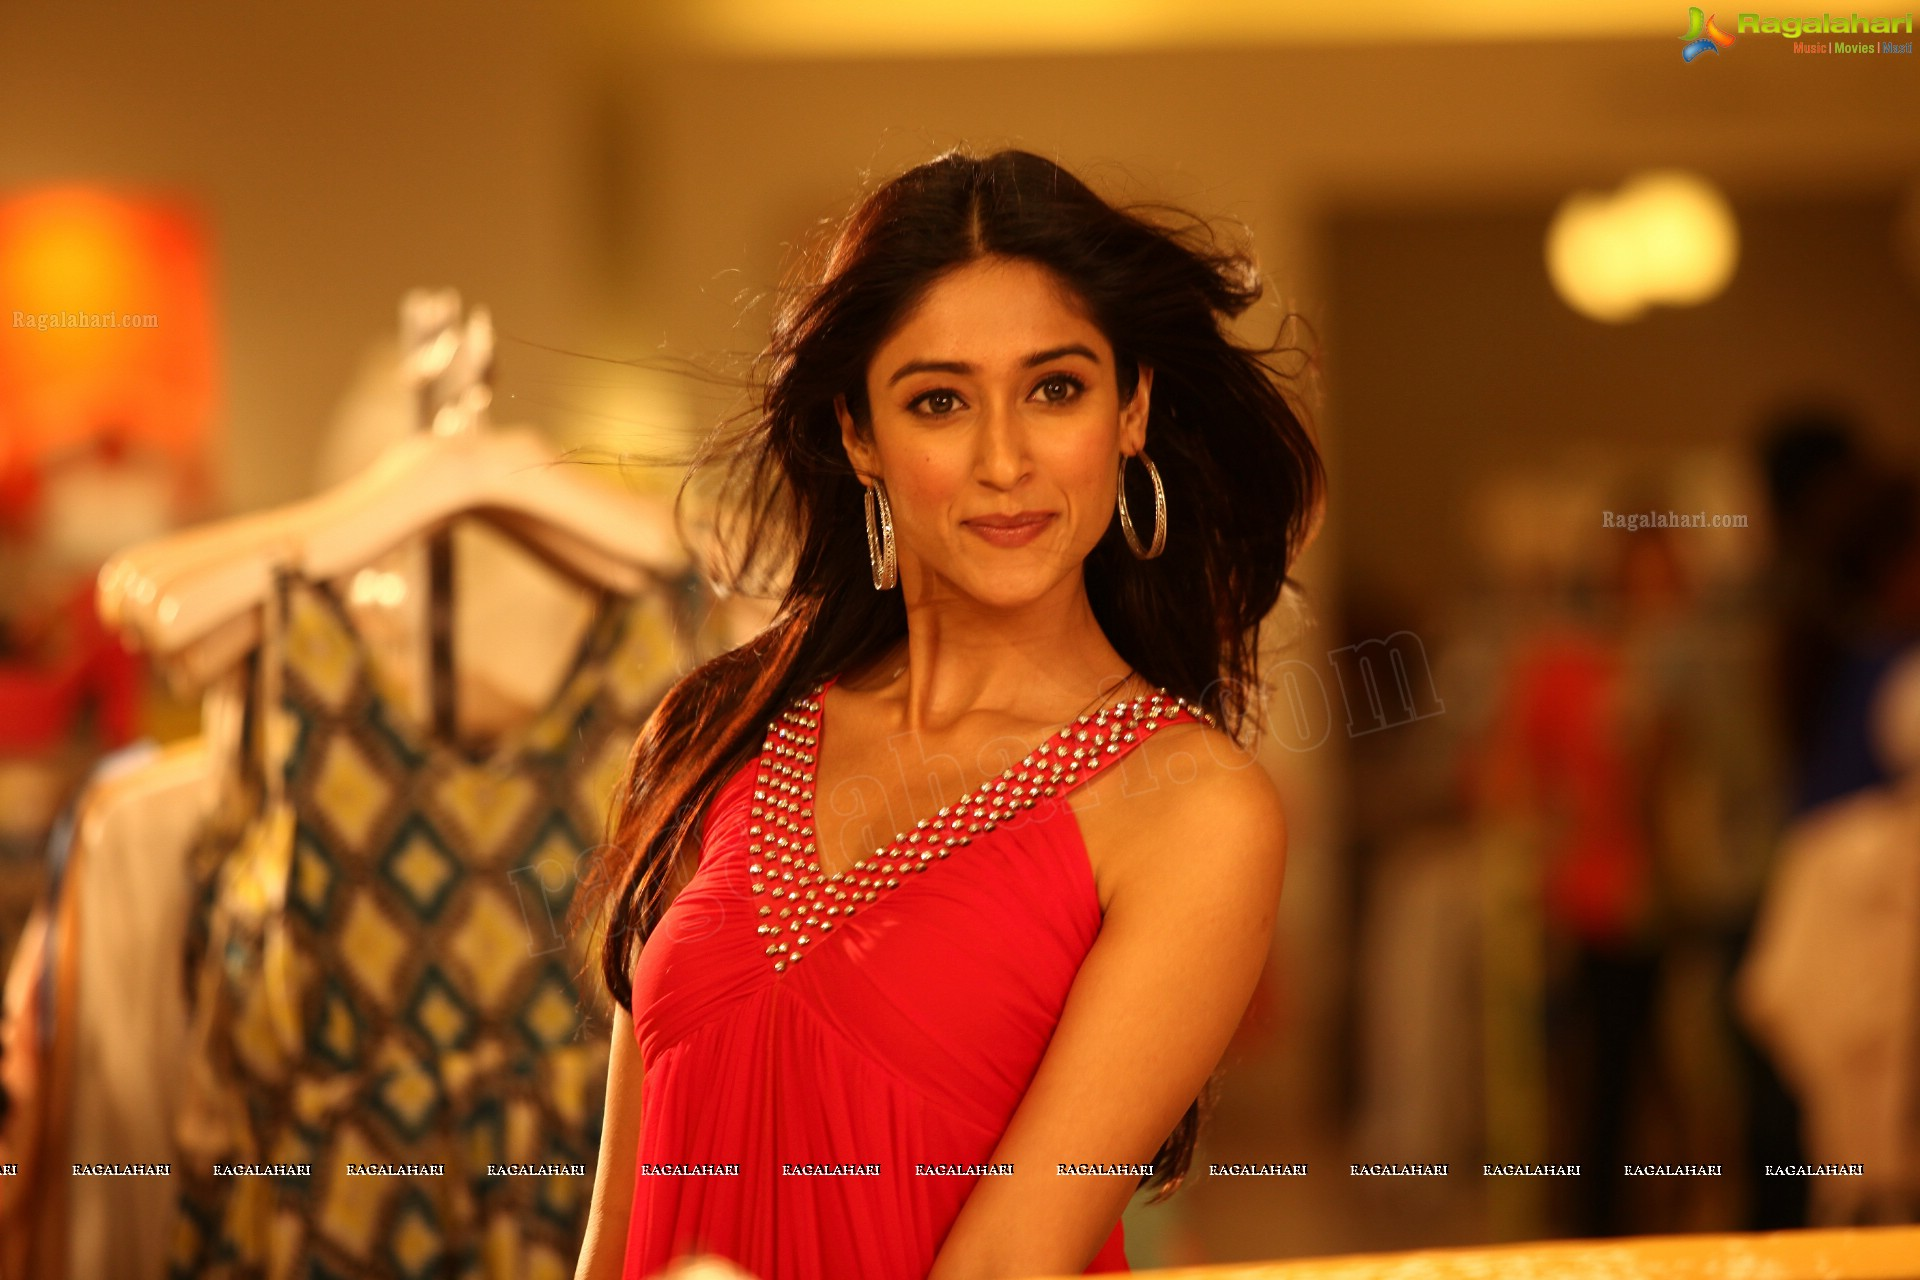 Gorgeous Actress Ileana in Midriff Dress - High Definition Photos